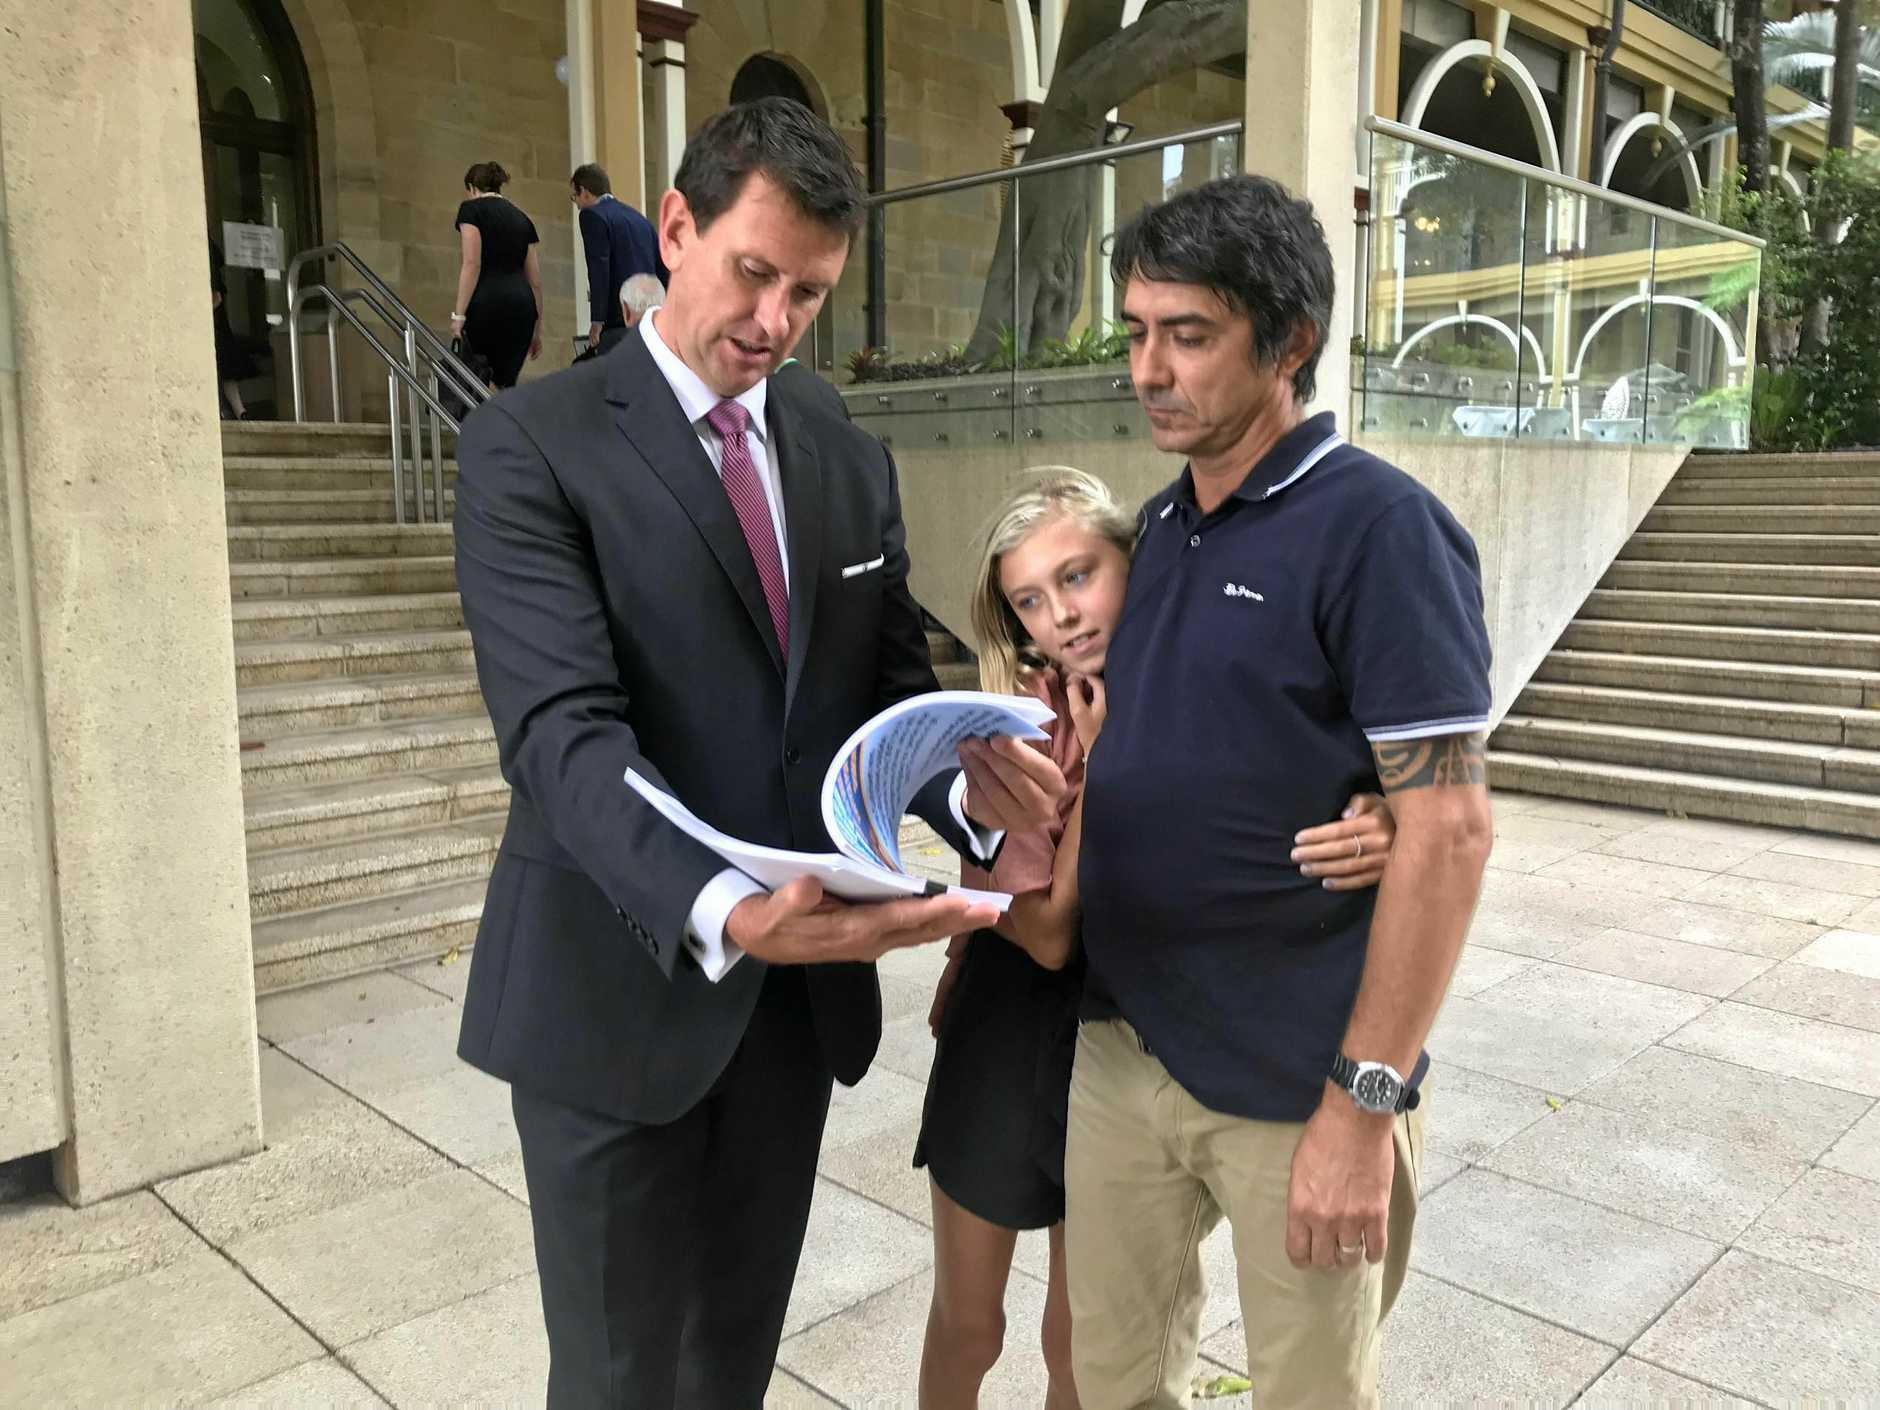 Member for Ninderry Dan Purdie peruses a petition with Coolum dad Michael Cuthbert and his daughter Makayla Cuthbert calling for an appeal against Andrew David Muirhead's sentence.